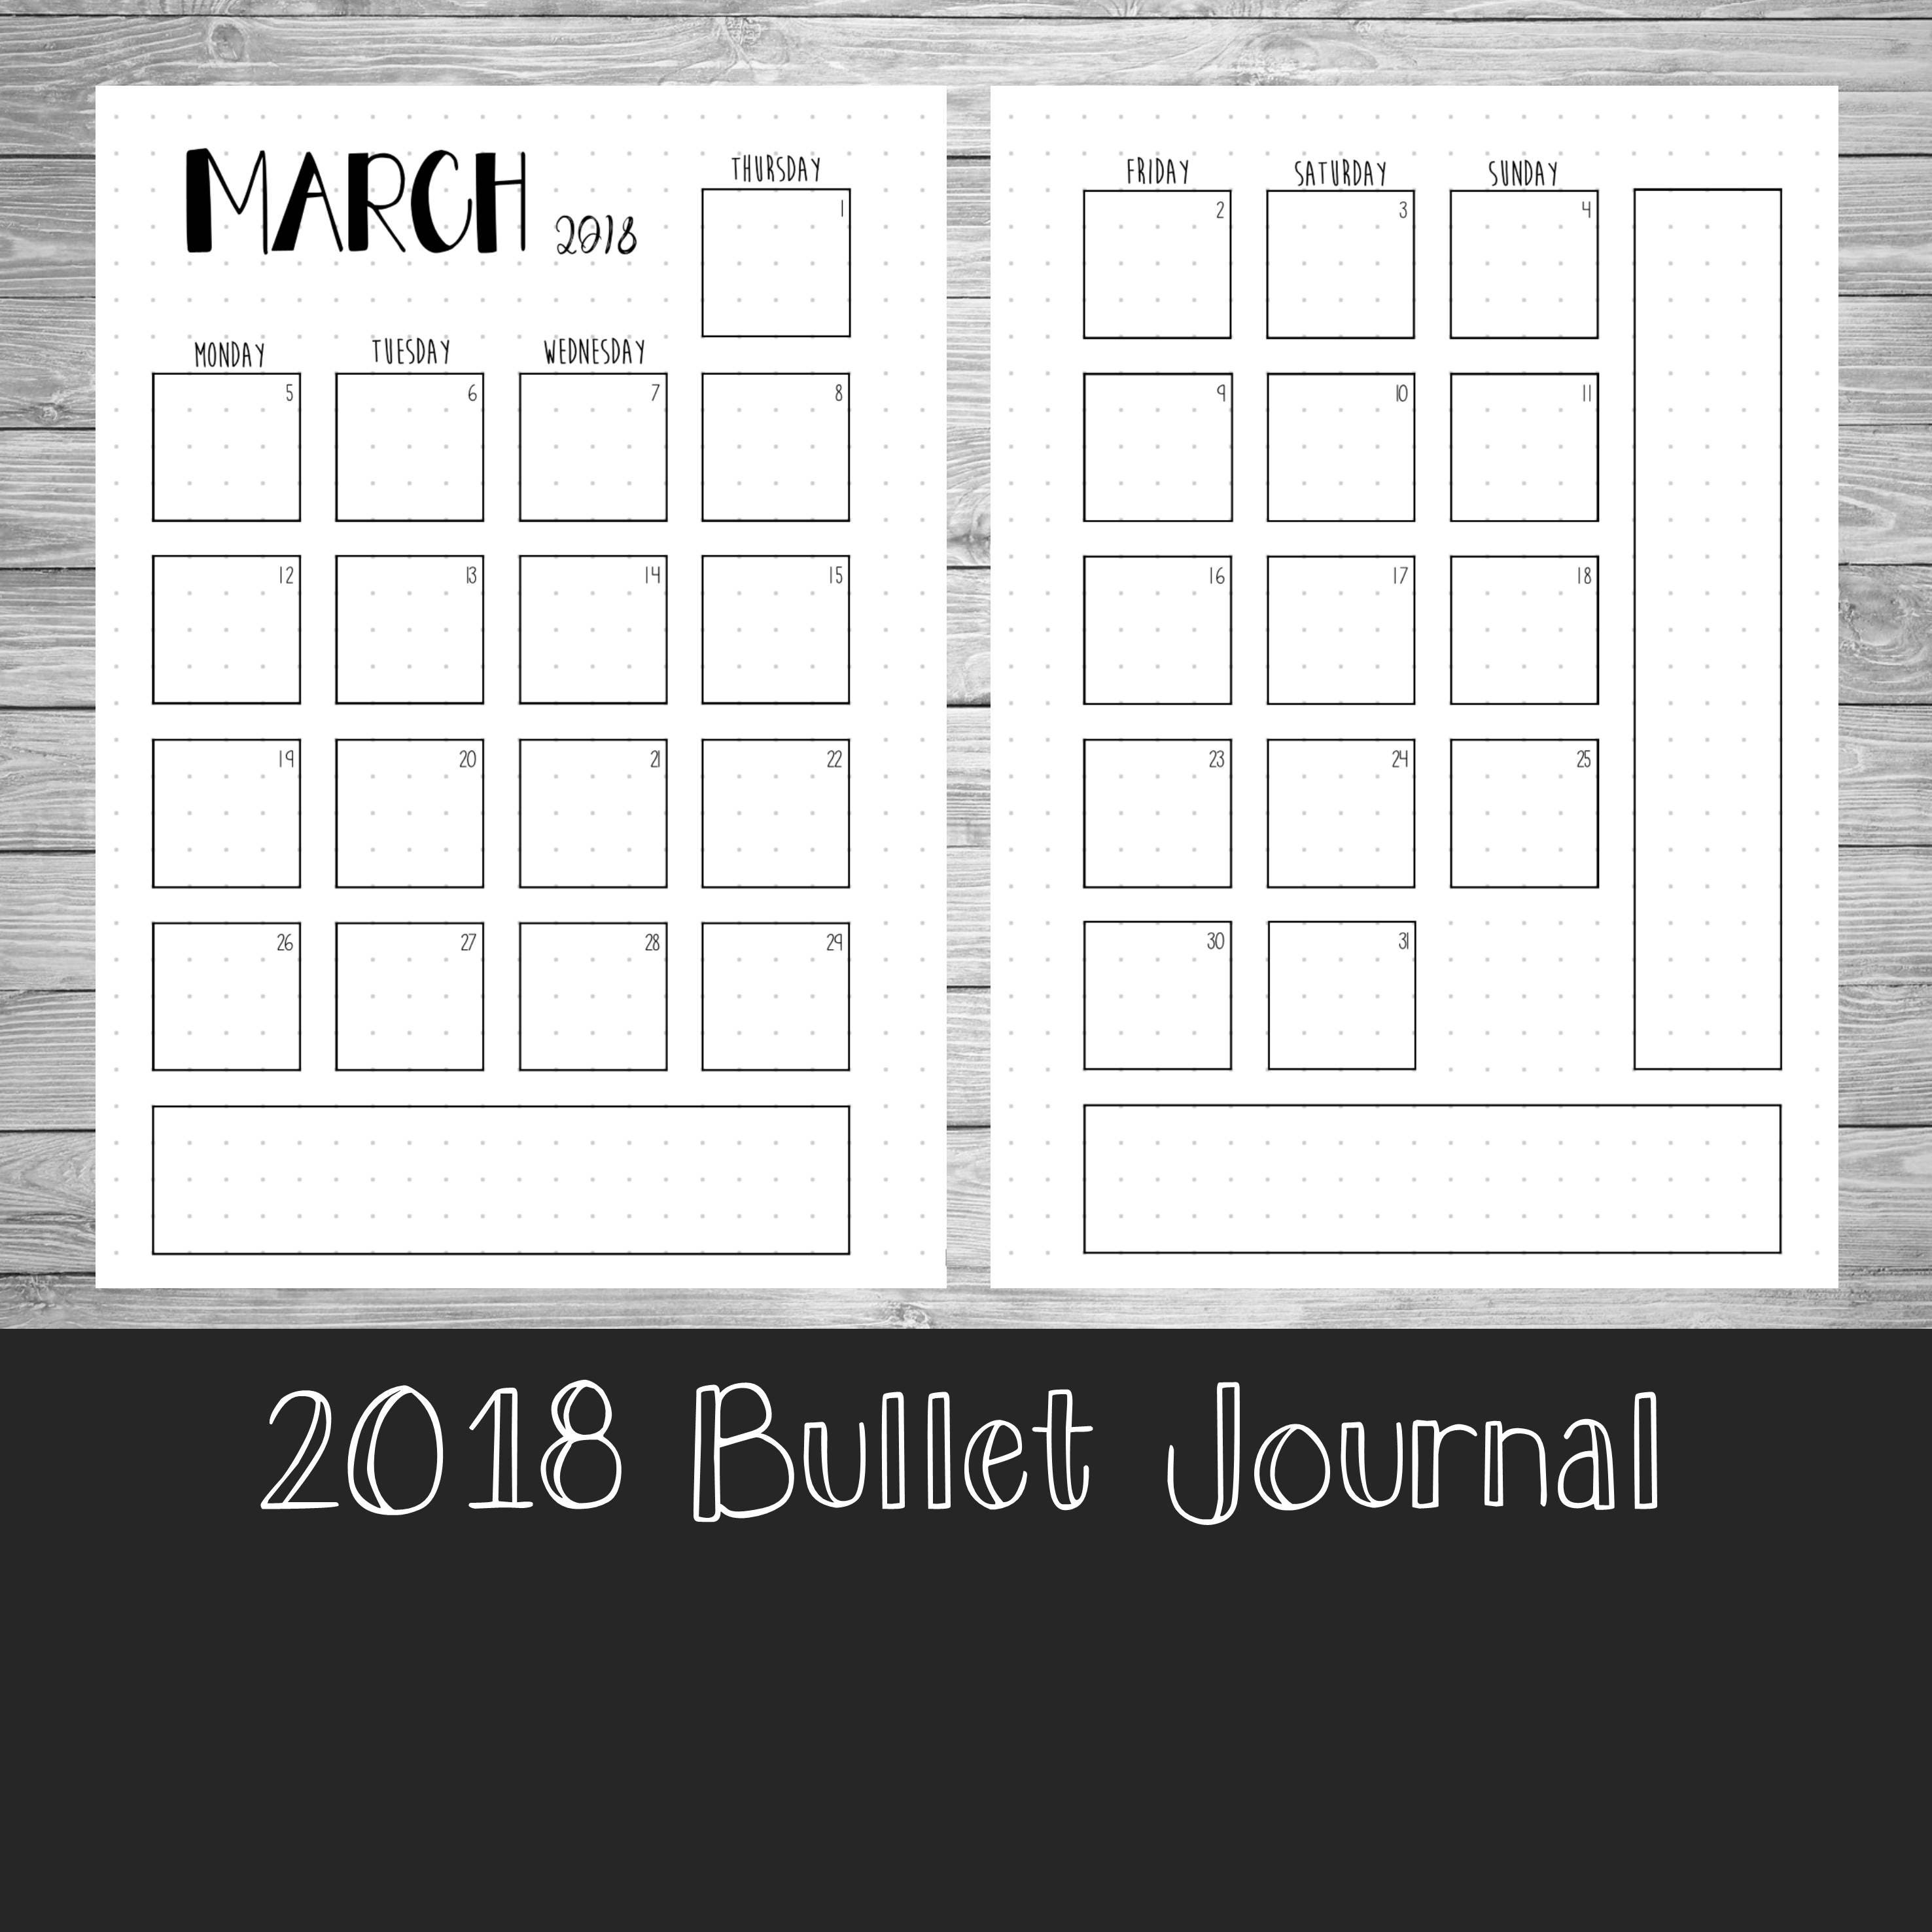 Calendar Bullet Journal 2018 : Monthly calendar bullet journal